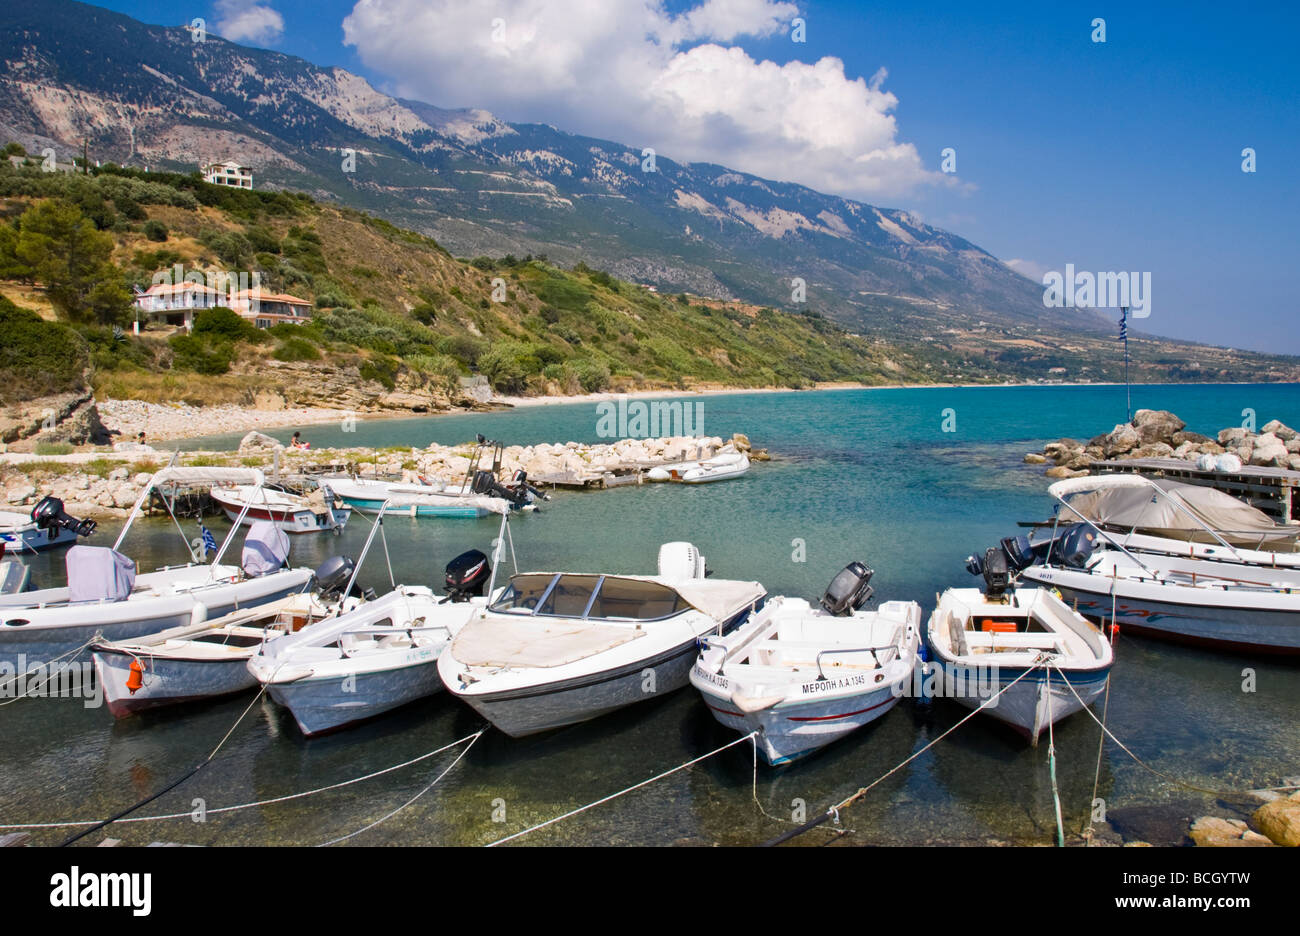 Small local harbour for leisure and pleasure botas at Trapezaki on the Greek island of Kefalonia Greece GR - Stock Image